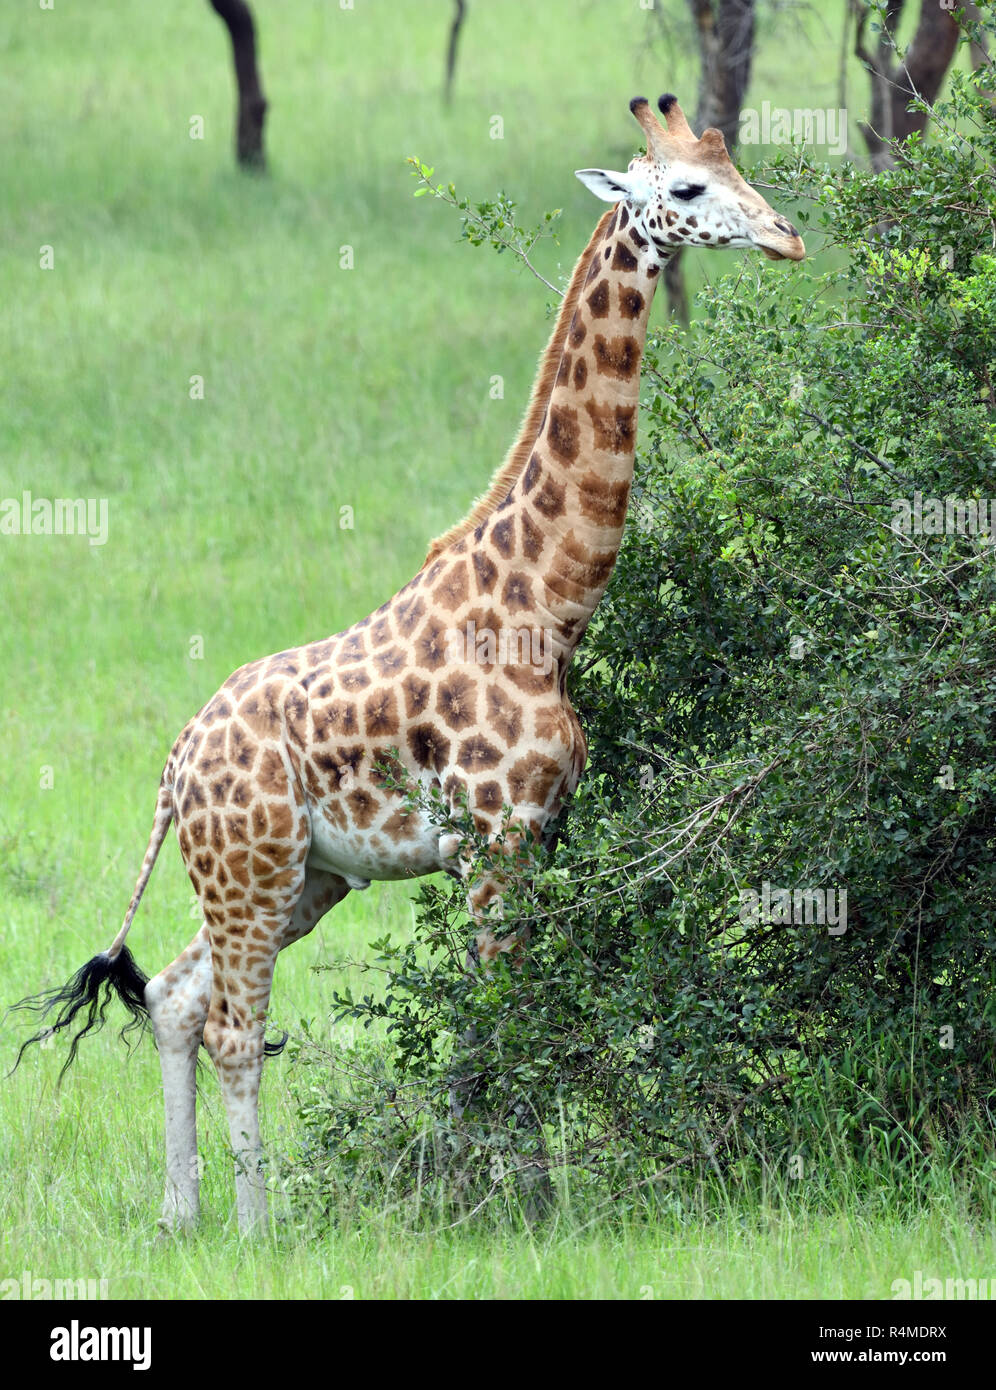 An endangered Rothschild's giraffe (Giraffa camelopardalis rothschildi) relocated for conservation purposes to the Queen Elizabeth National Park. Quee - Stock Image